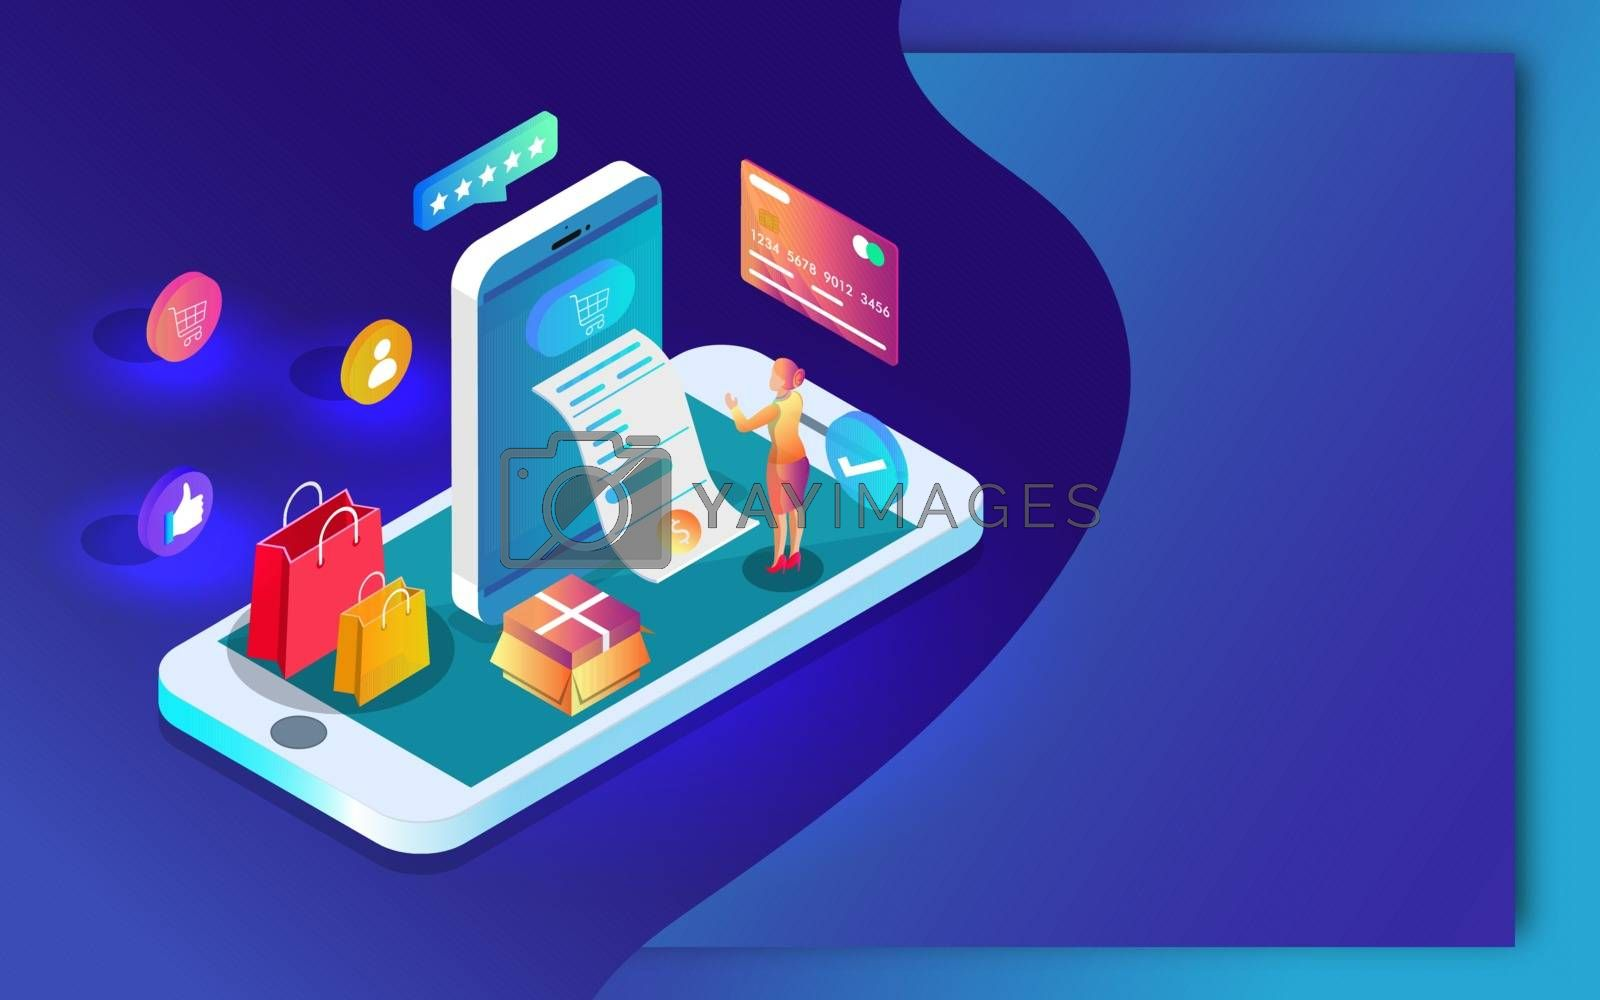 Royalty free image of 3D illustration of Online shopping app in smartphone with paymen by aispl